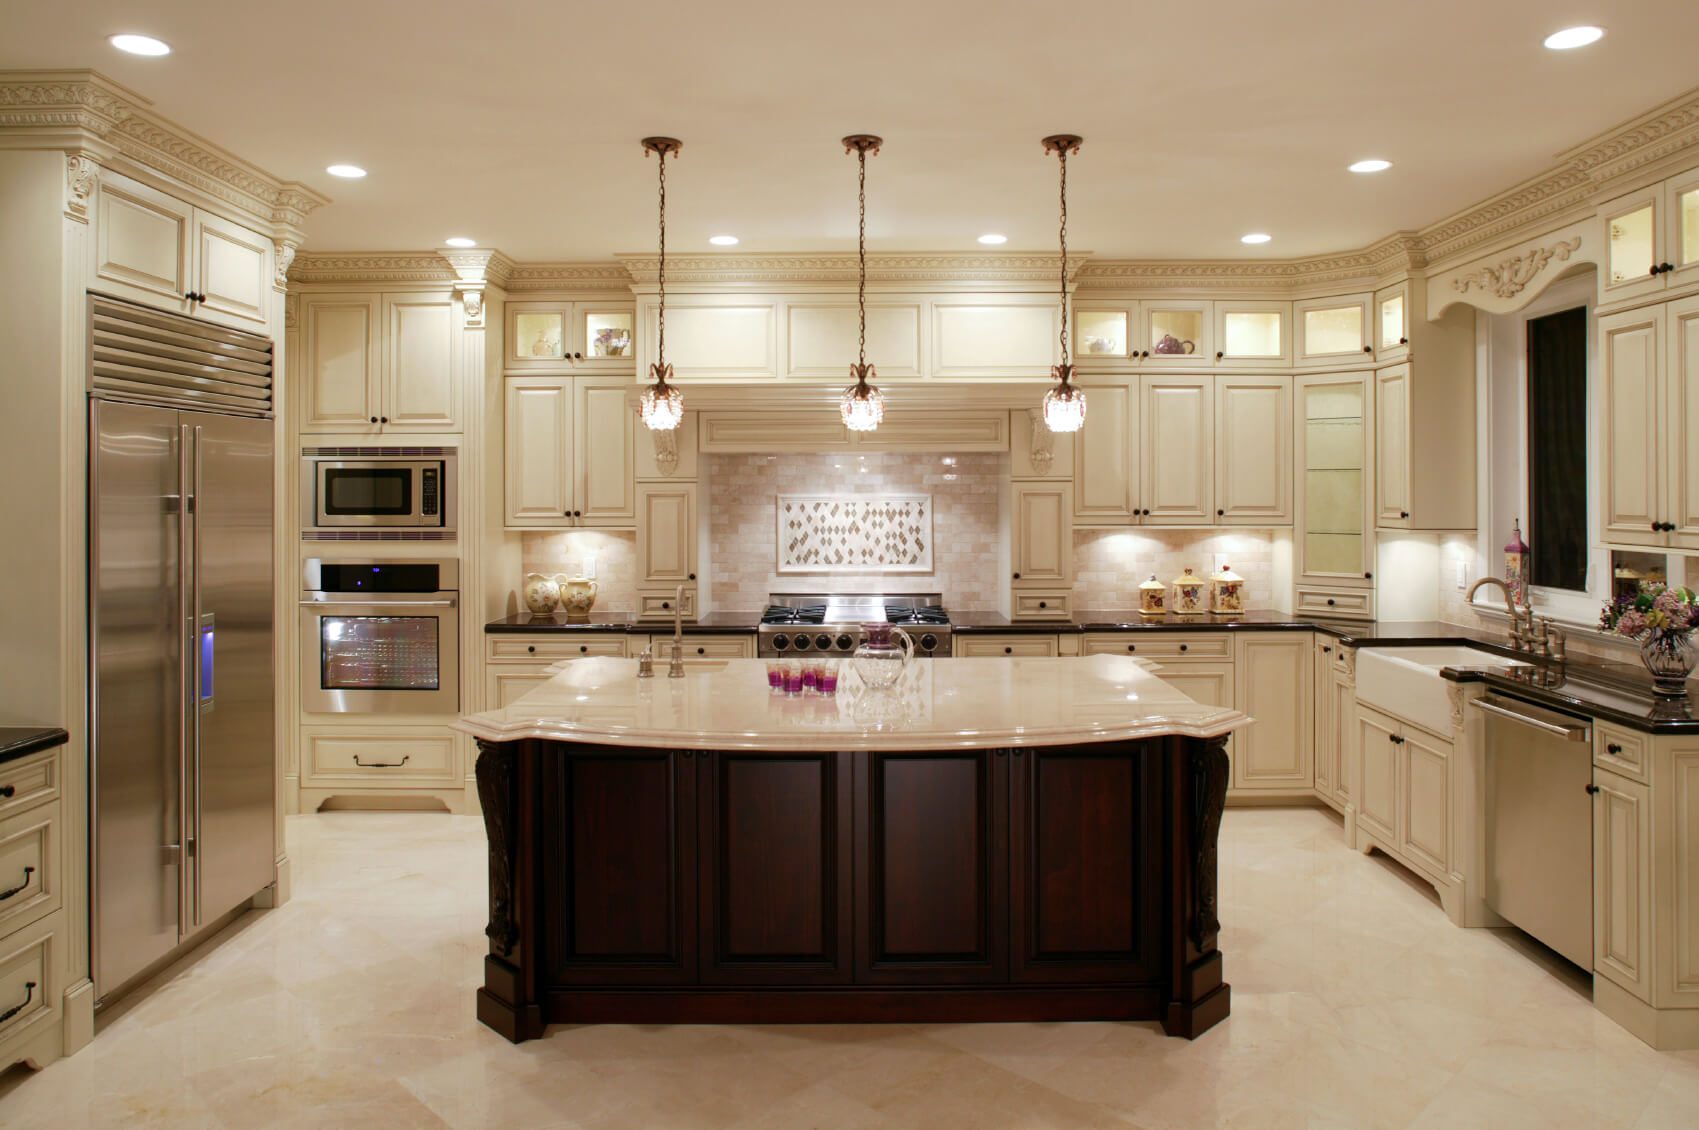 u shaped kitchen designs kitchens designs This U shaped kitchen centers around a large dark wood island with classic marble countertop